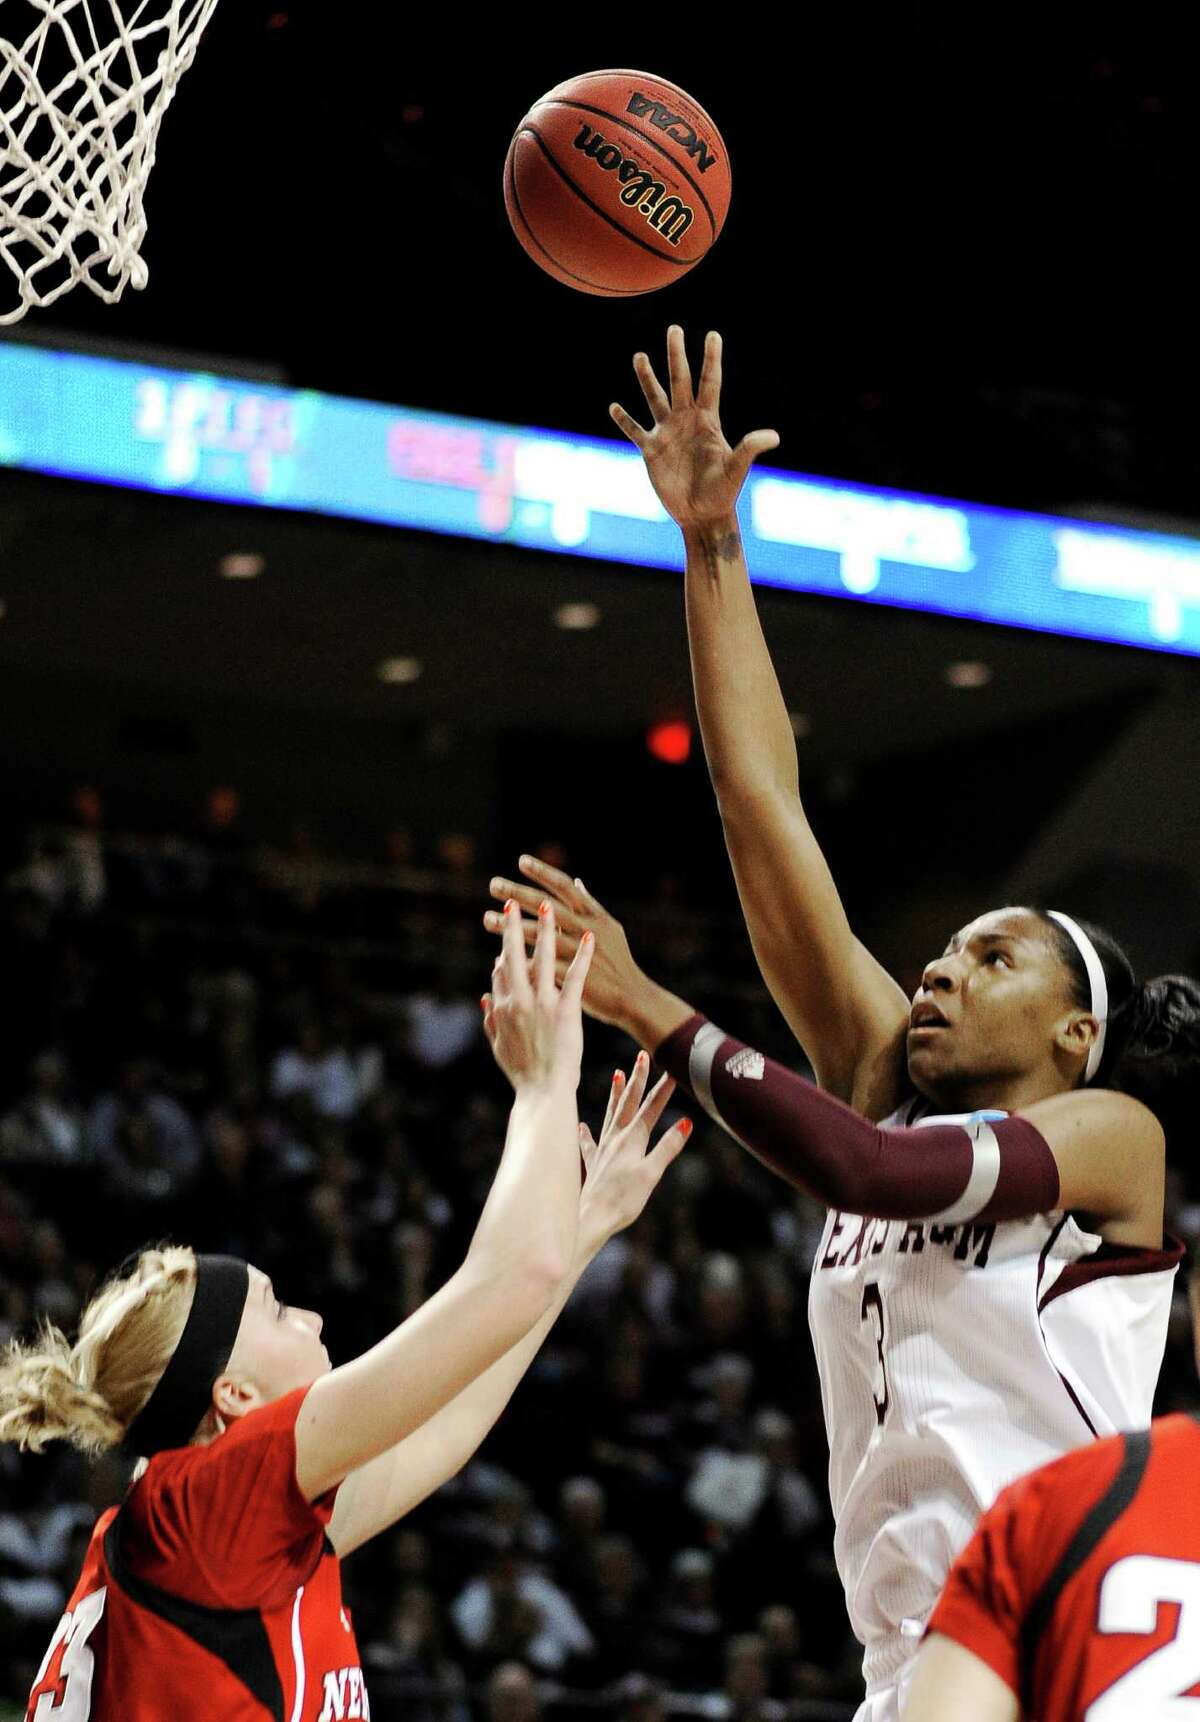 Texas A&M's Kelsey Bone (3) shoots over Nebraska's Emily Cady (23) during a second-round game in the NCAA women's college basketball tournament in College Station, Texas, Monday, March 25, 2013.